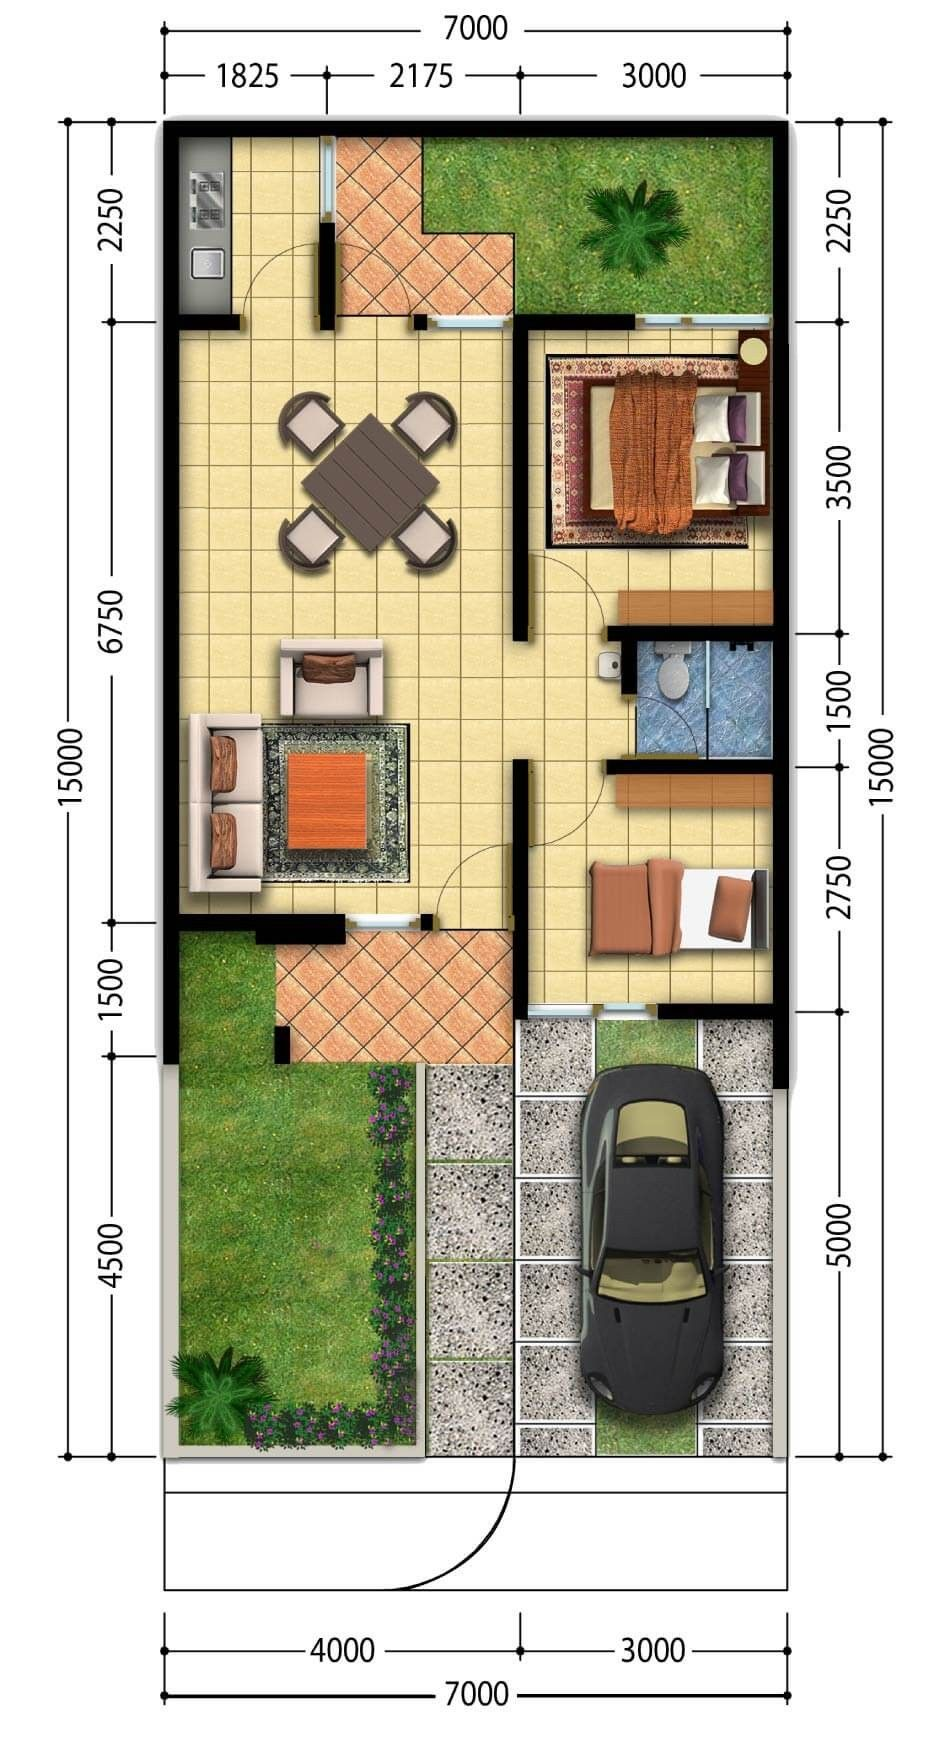 Amazing Beautiful House Plans With All Dimensions To See More Visit Rumah Minimalis Denah Rumah Desain Rumah